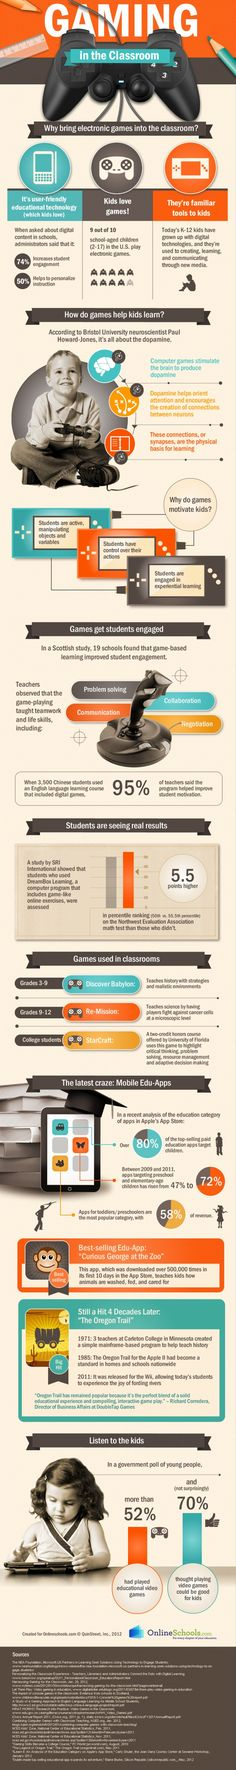 Experiments show that playing games support learning, with the potential to increase student engagement and motivation. Check out some fact success stories of integrating electronic games into the classroom. #infographic #2012